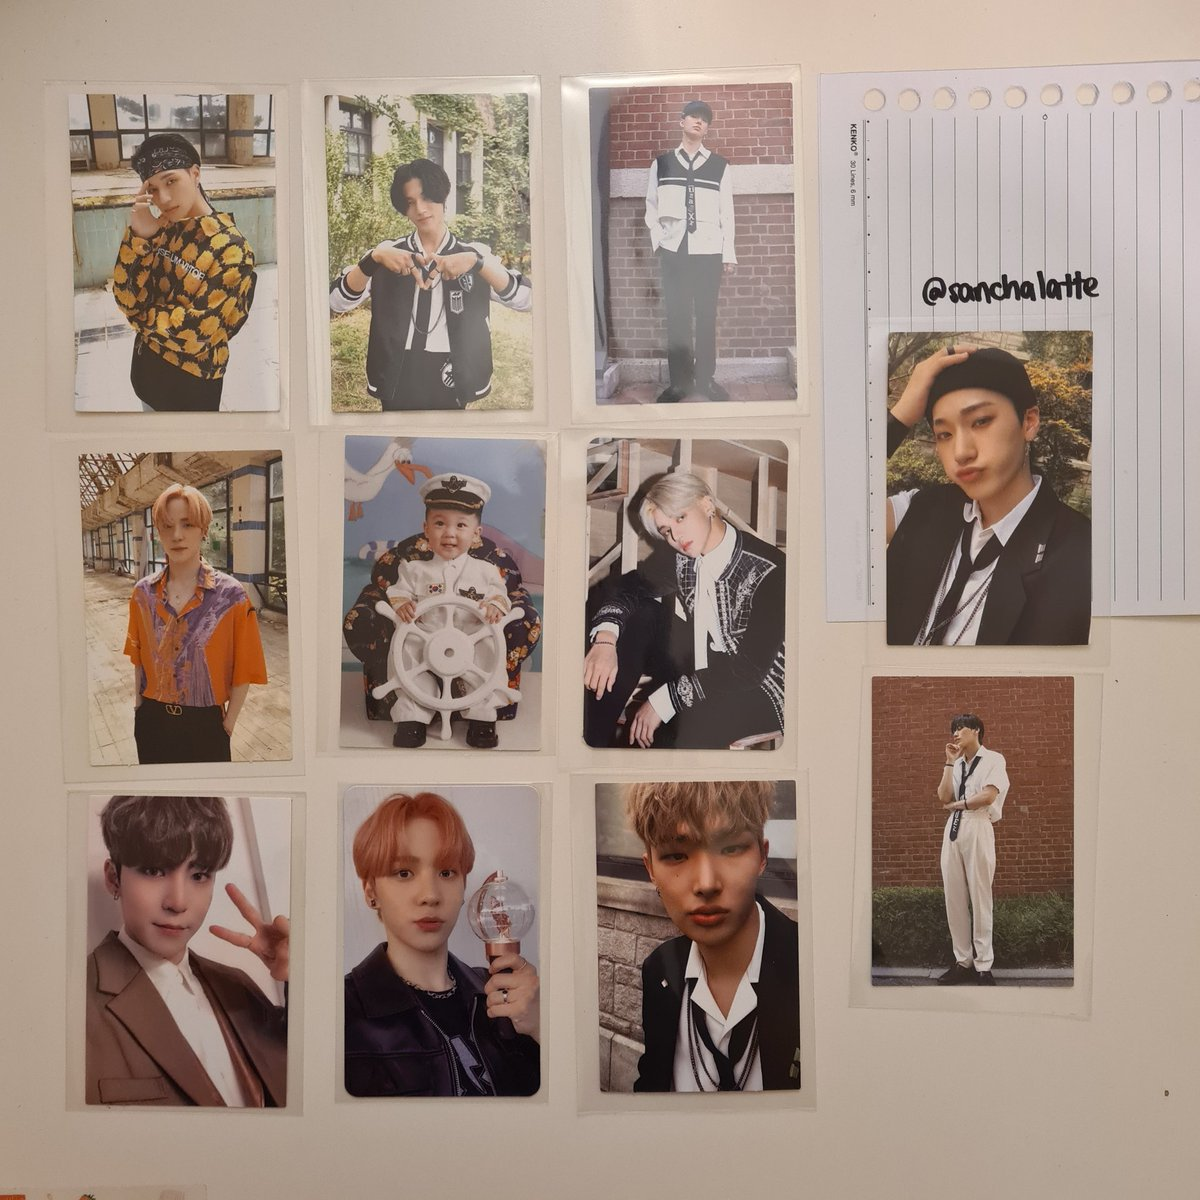 WW ATEEZ PC GIVEAWAY  a small token of appreciation to ALL ATINYS working hard on the SMA votings 💗   5 winners, each 1 PC of choice  to be enter: - RT and like - reply your voting proof (see ⬇️)  chosen randomly ending 15th Jan 2021 11PM KST @ATEEZofficial #ATEEZ #에이티즈